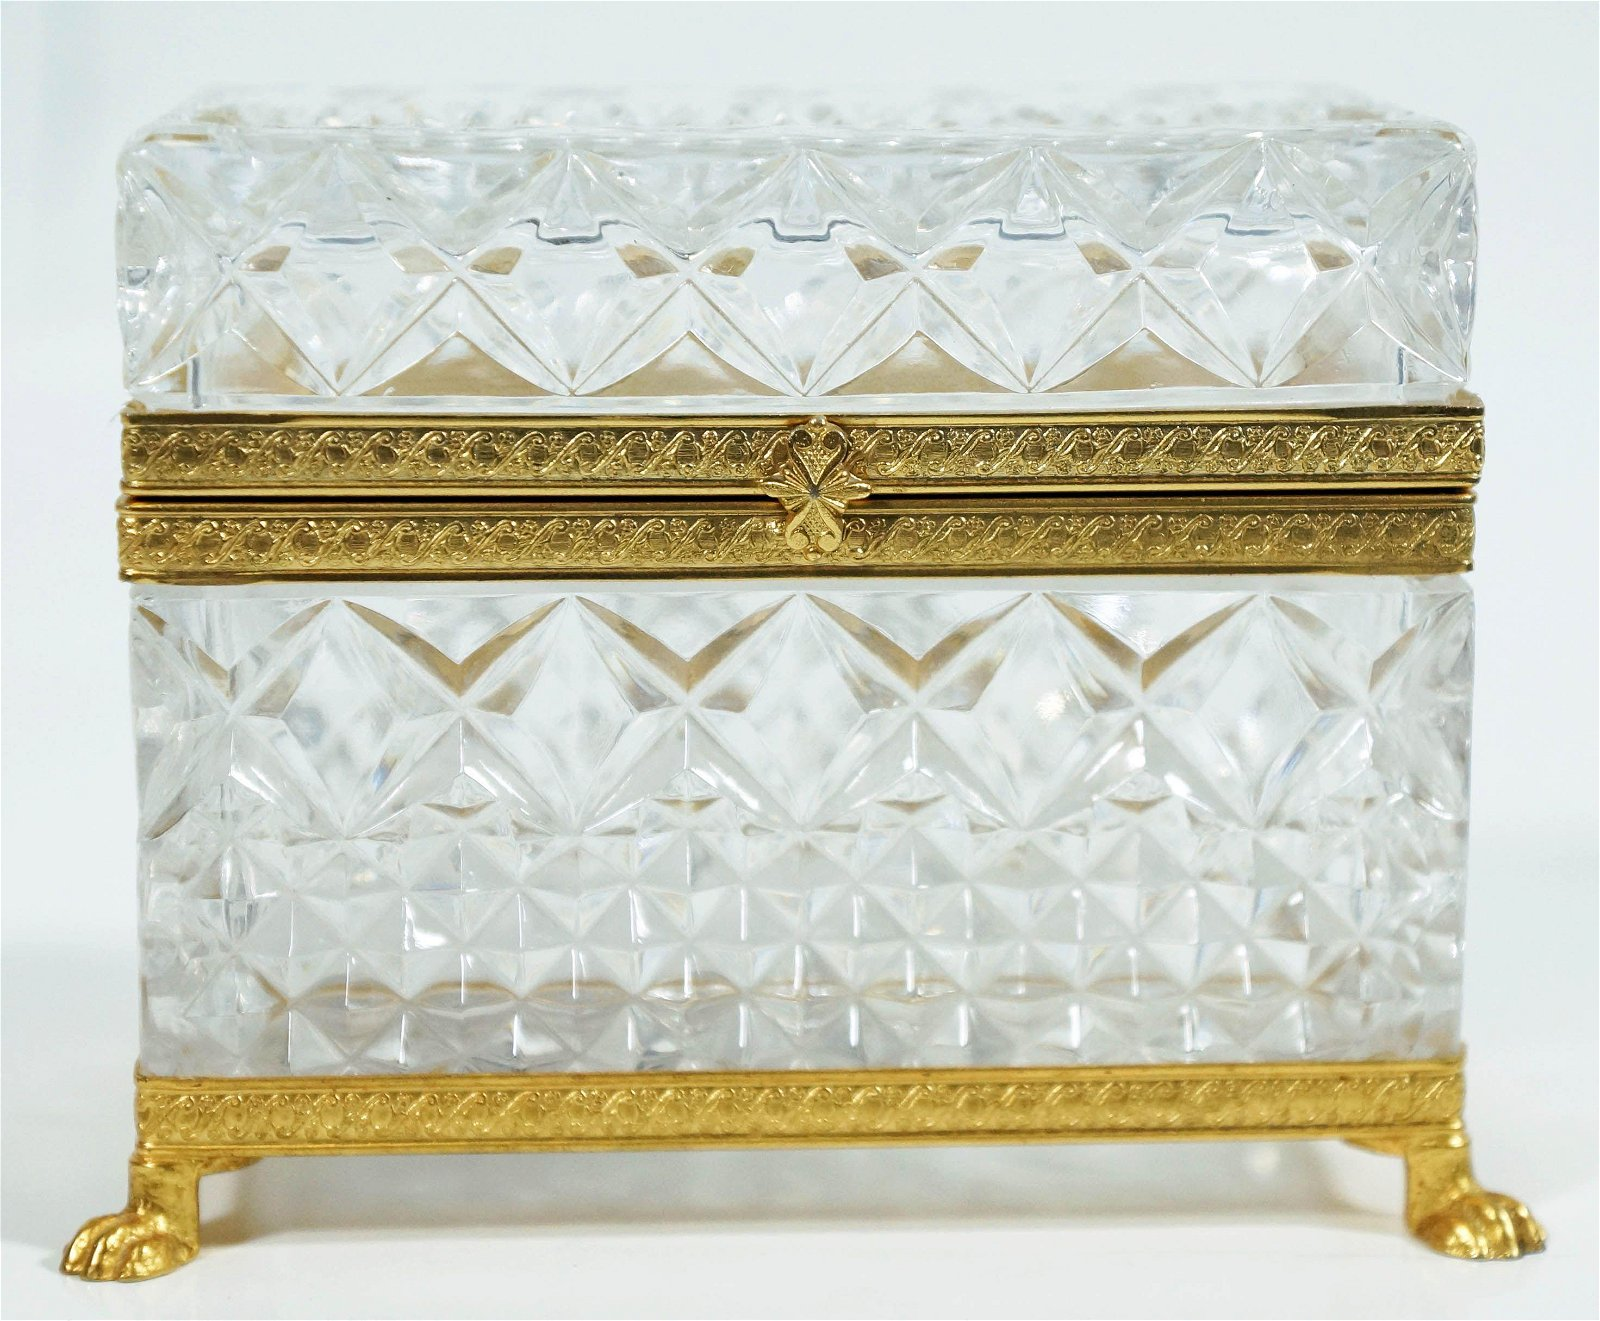 Continental Gilt Metal Mounted Cut Glass Box Late 19Th